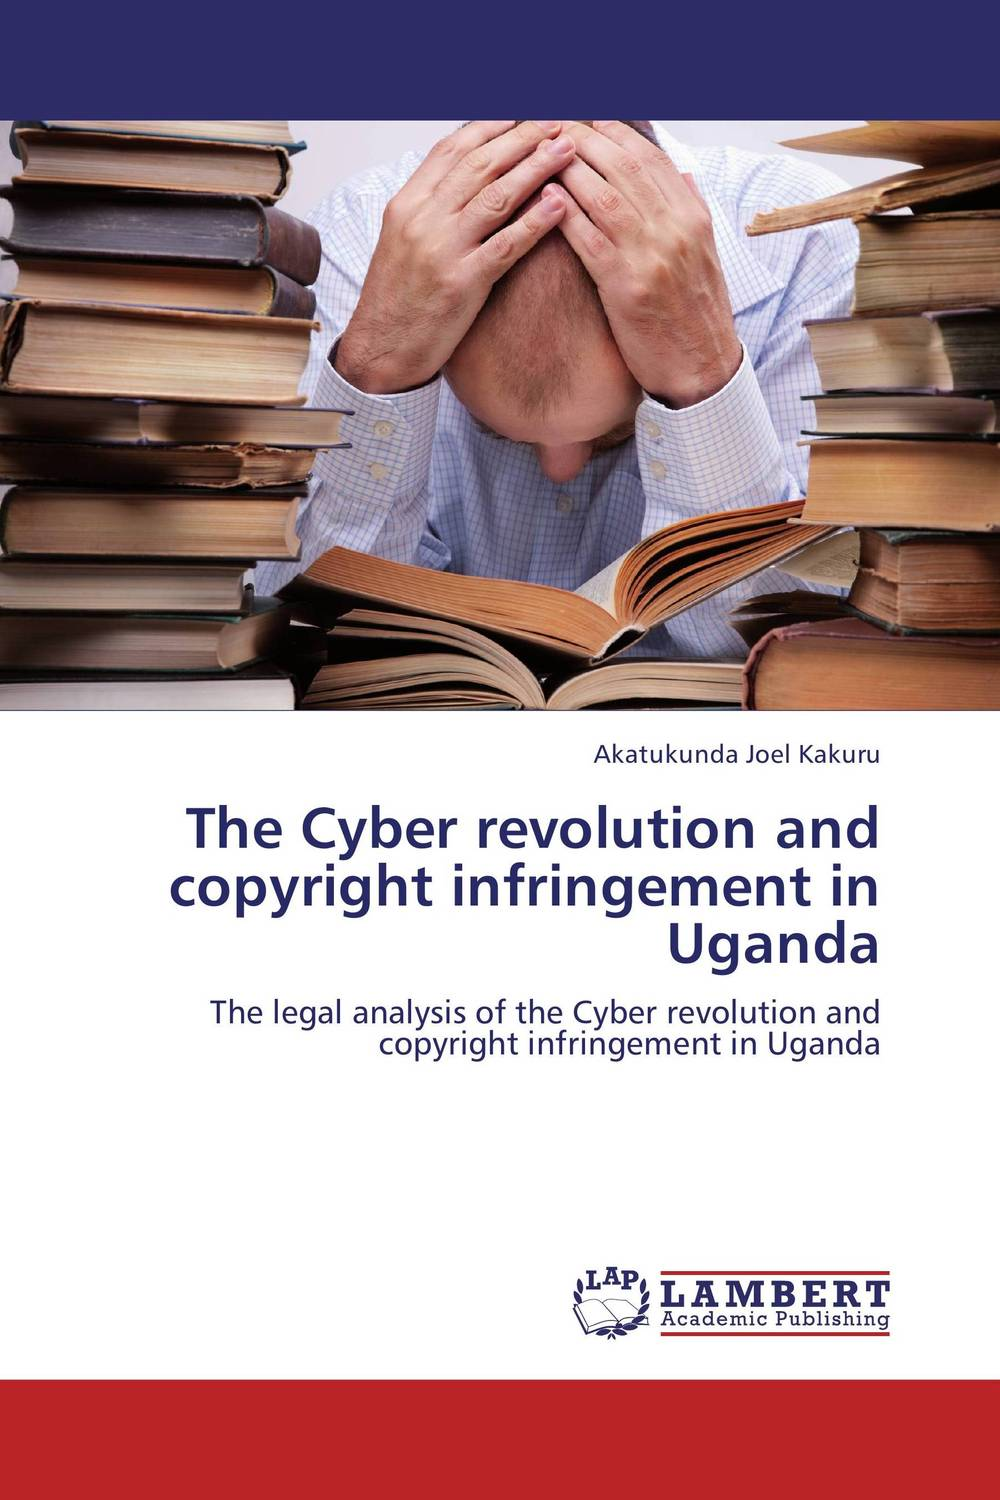 The Cyber revolution and copyright infringement in Uganda